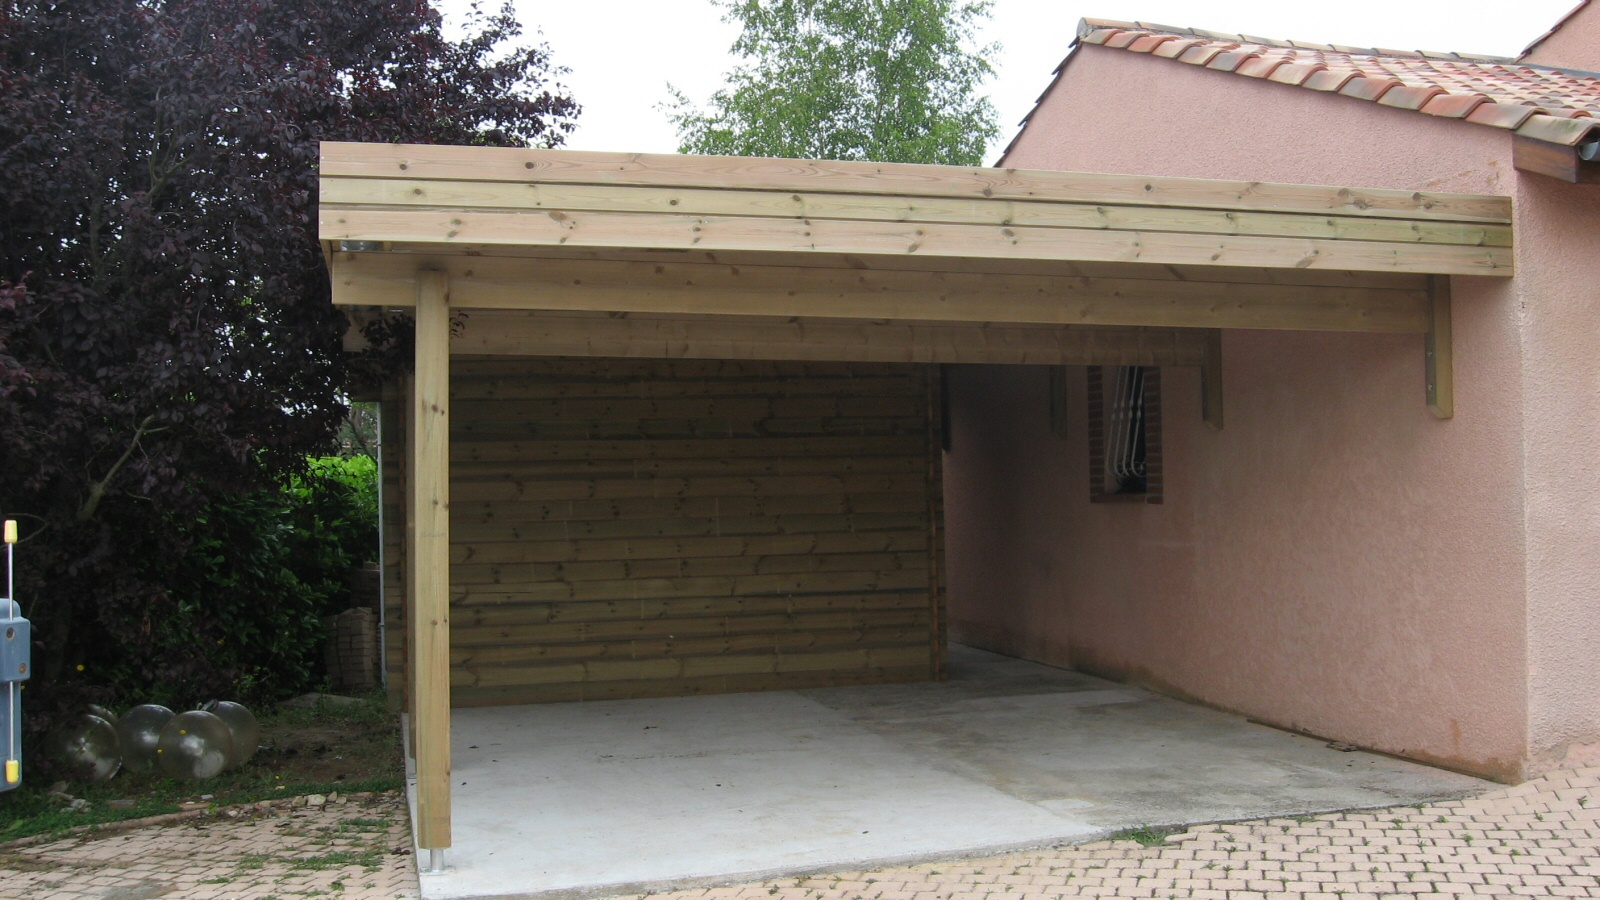 Carports bois garages bois personnalis s au sur mesure for Garages and carports